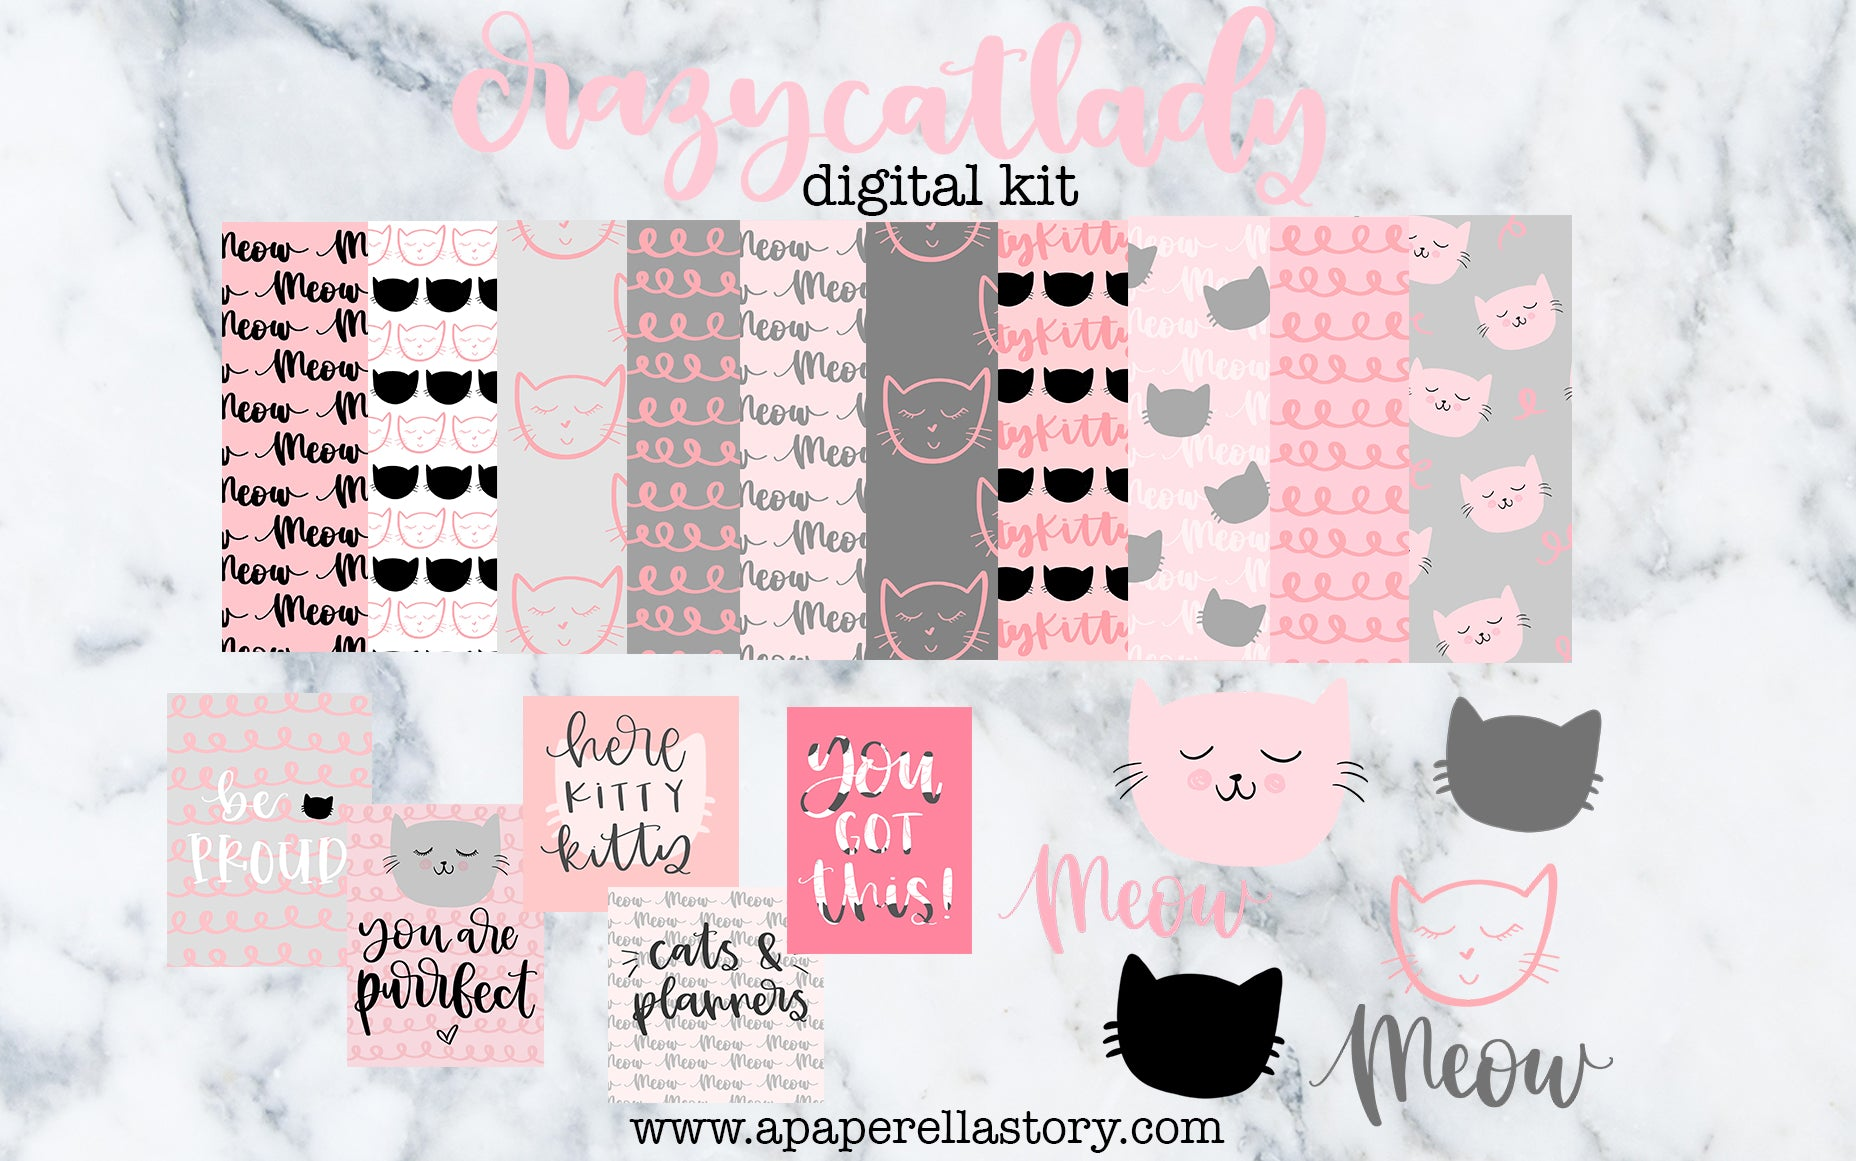 Crazy Cat Lady - Digital Kit